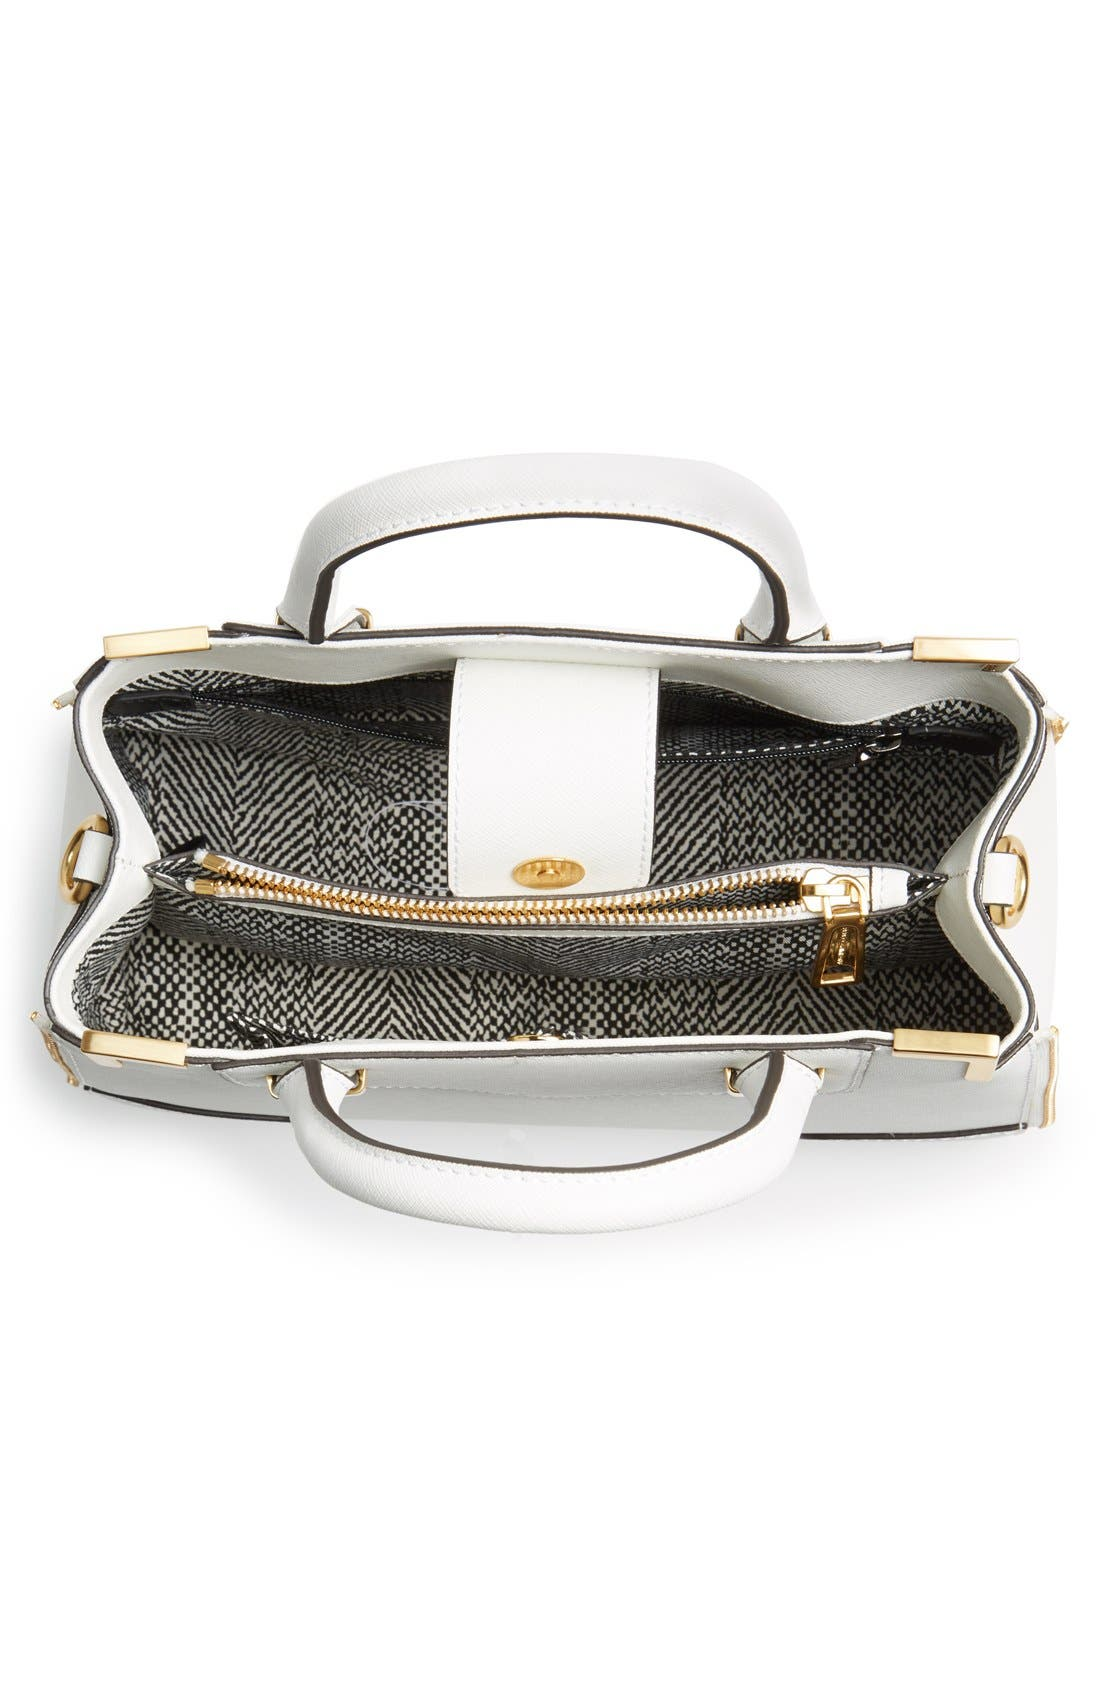 Alternate Image 3  - Rebecca Minkoff 'Small Amorous' Satchel